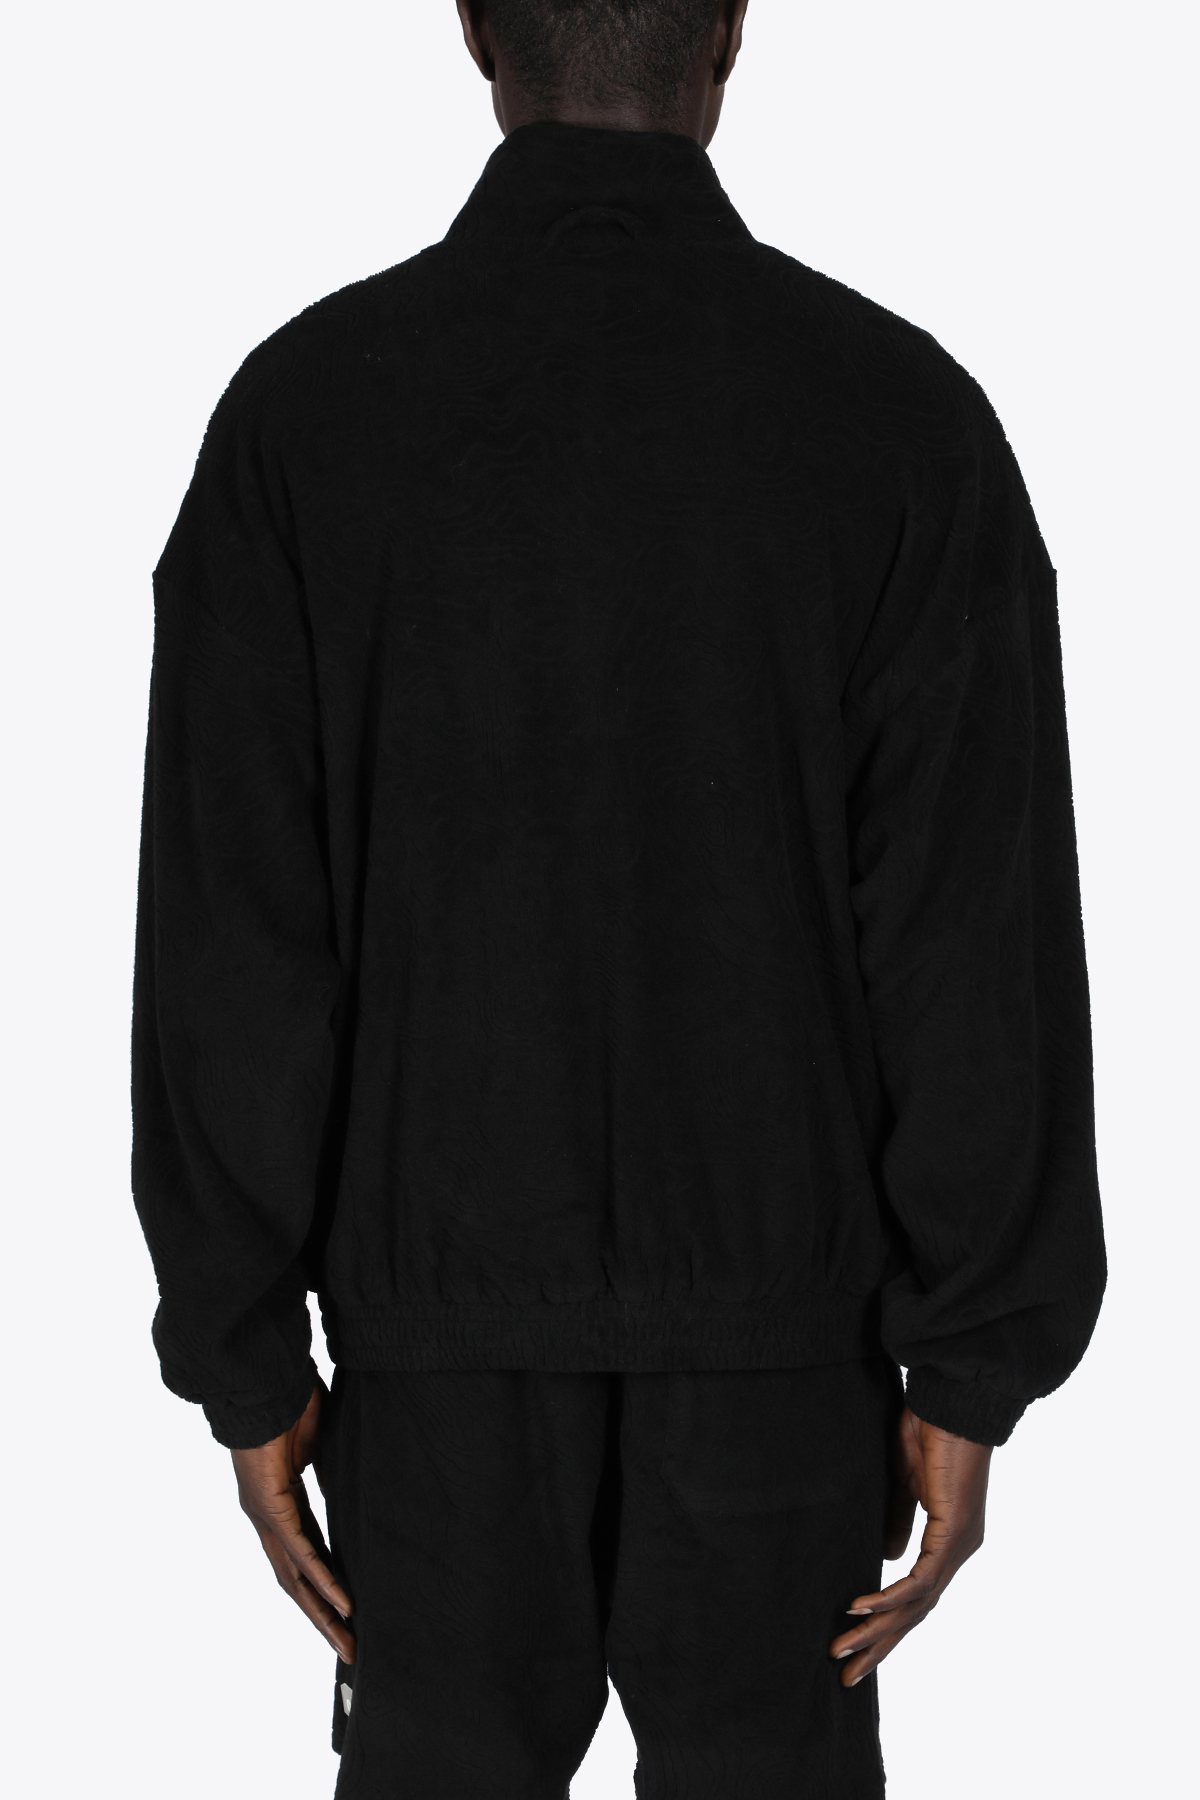 TOPOS SHAVED TERRY JACKET 032C | 3 | SS21-C-2010 TOPOS SHAVED TEEY JACKETBLACK